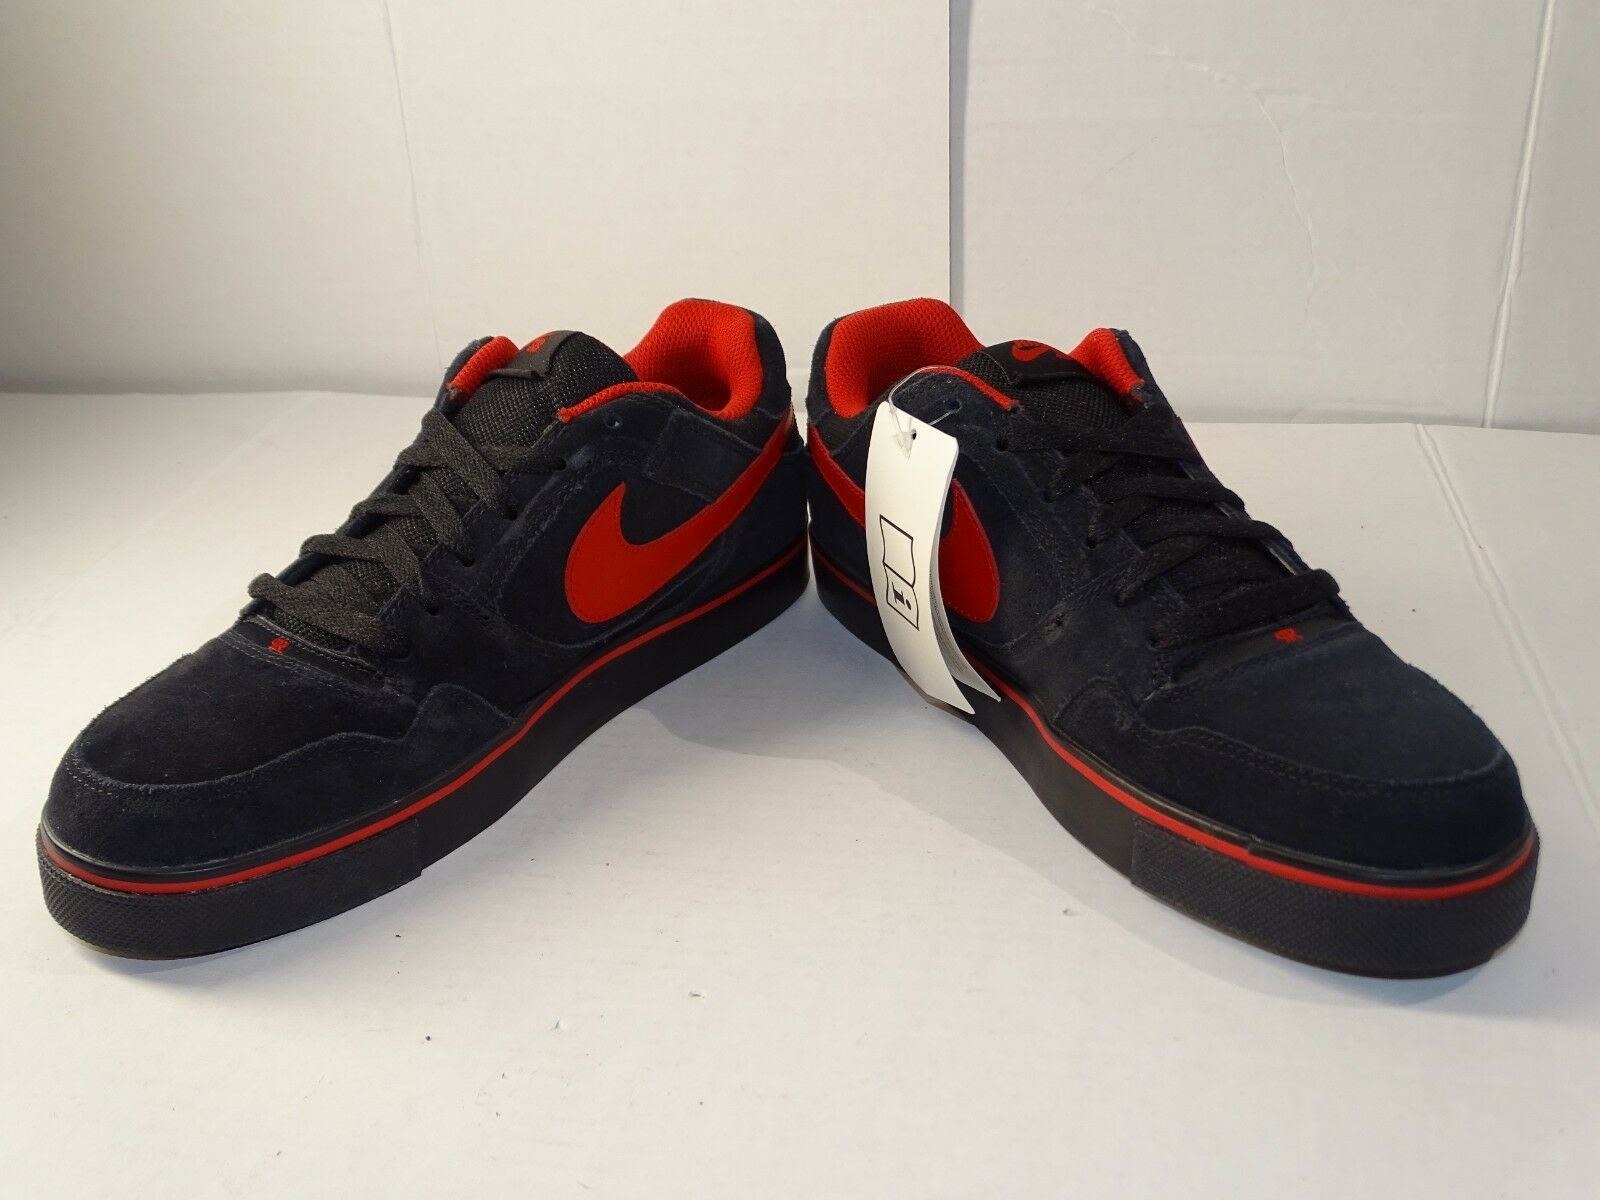 Men's Nike SB Zoom PAUL RODRIGUEZ 2.5 Black   Varsity Red 386613-004 shoes 9